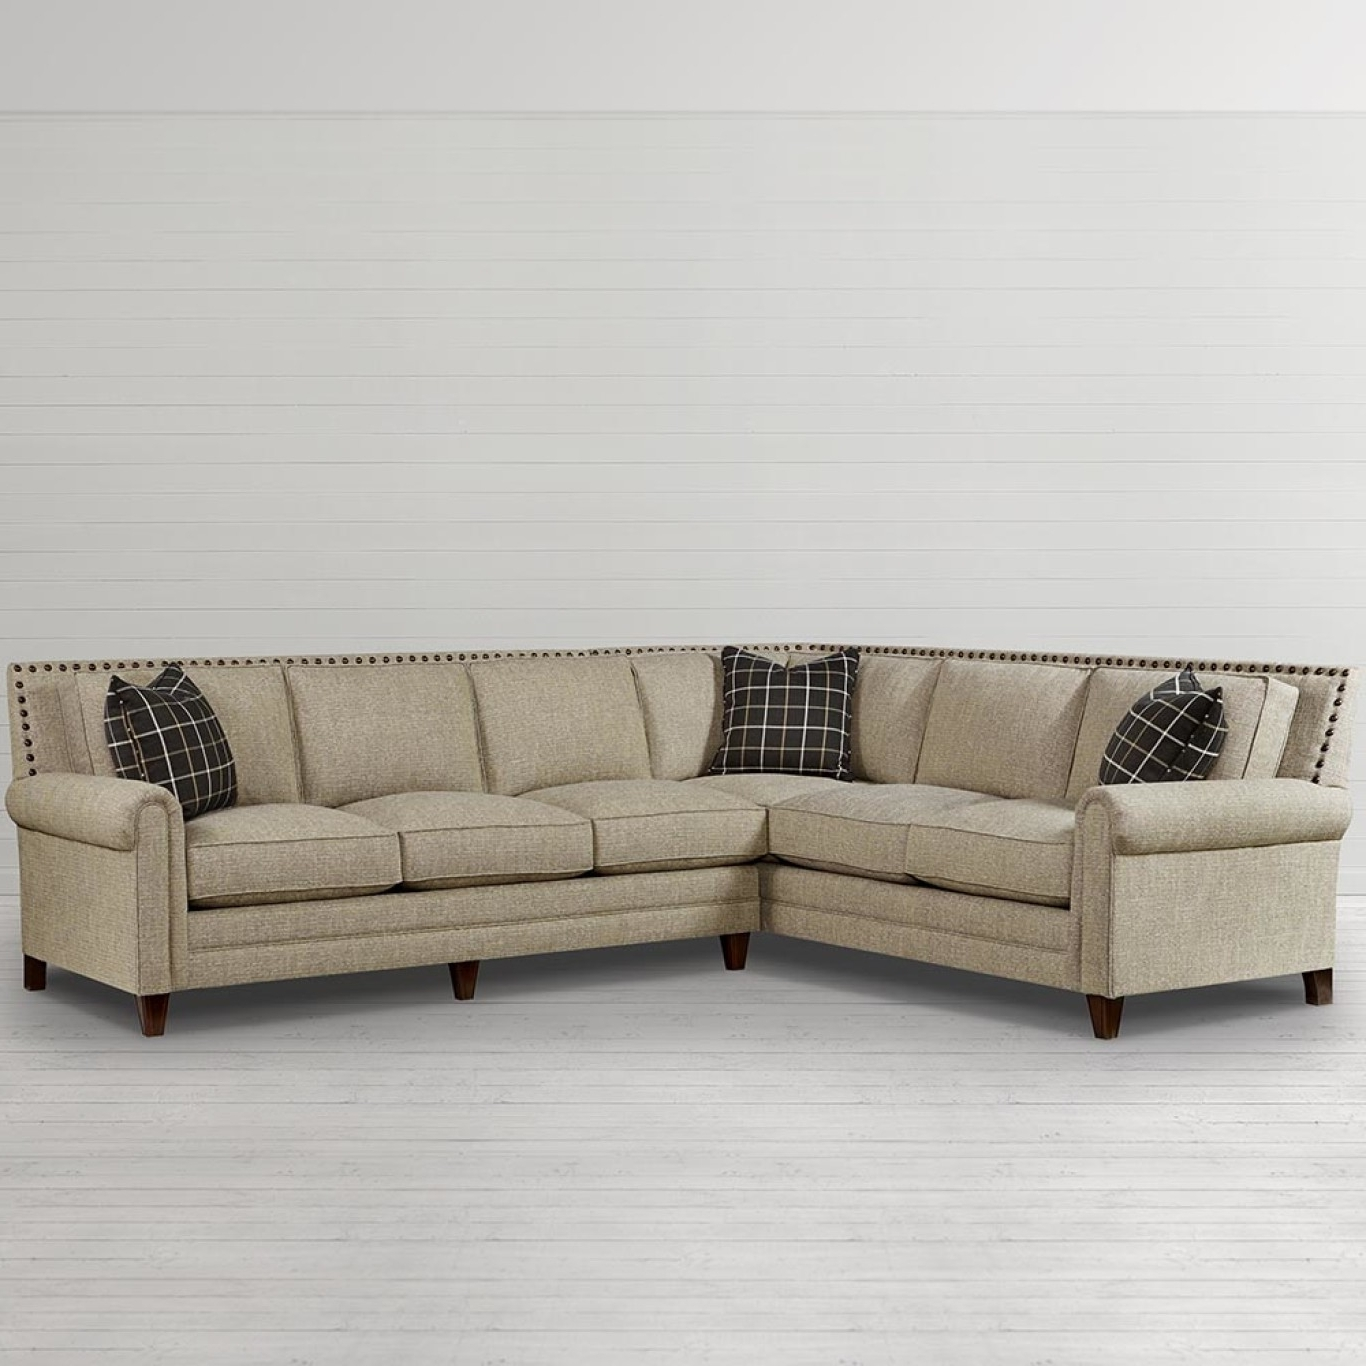 Bassett Furniture Greenville Sc Pertaining To Fashionable Sectional Sofas In Greenville Sc (View 10 of 15)